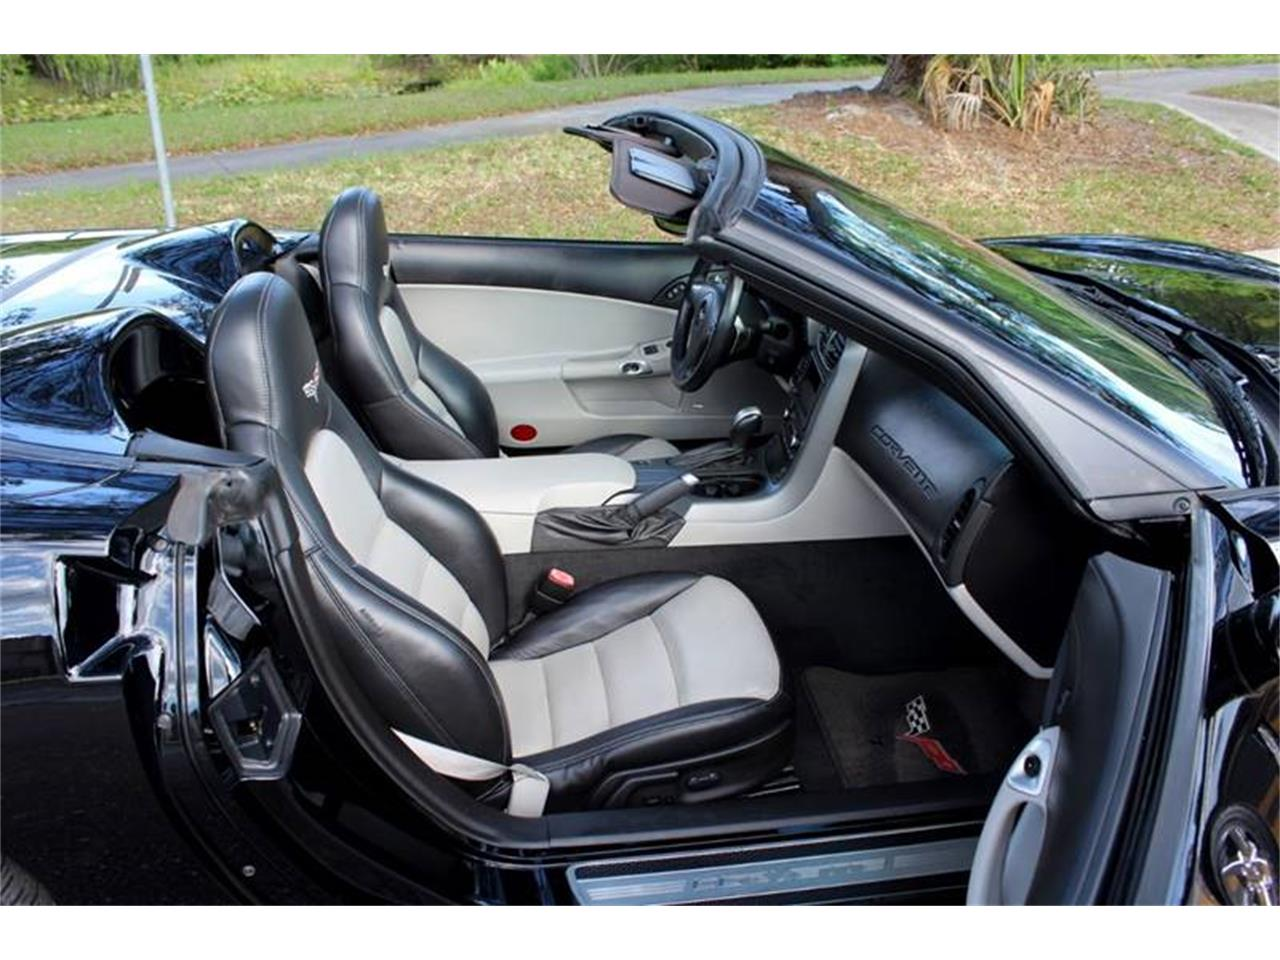 Large Picture of 2007 Corvette located in Florida Offered by PJ's Auto World - Q12D